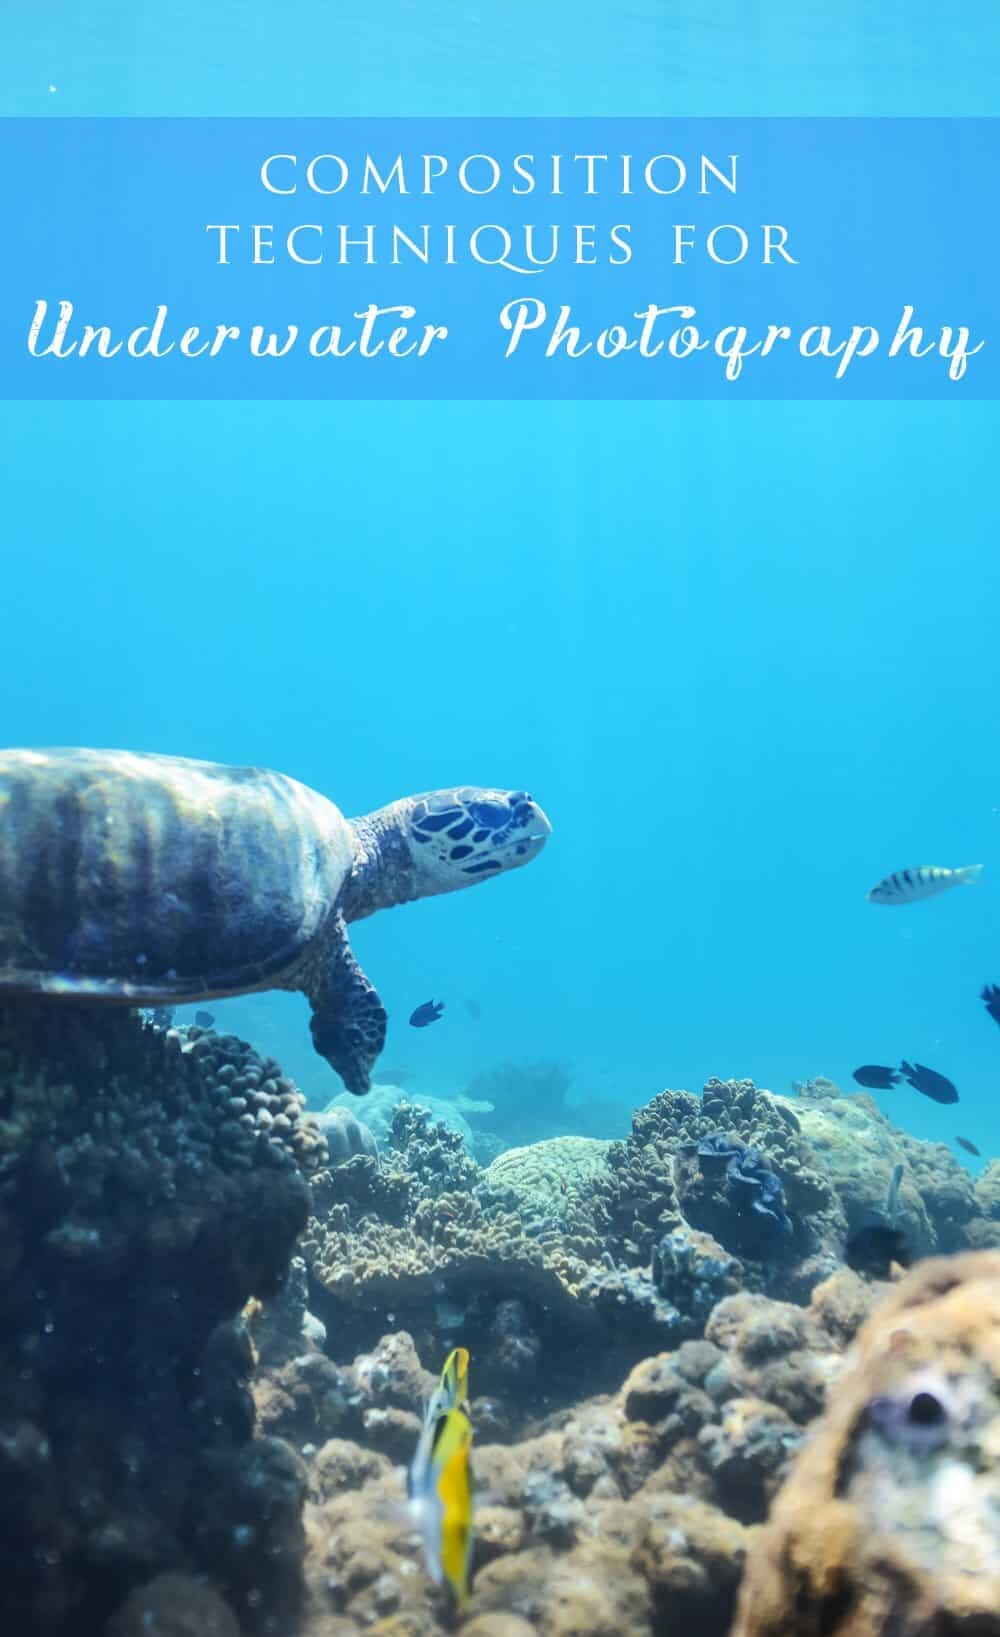 Underwater Photography Composition Techniques by The Wandering Lens www.thewanderinglens.com